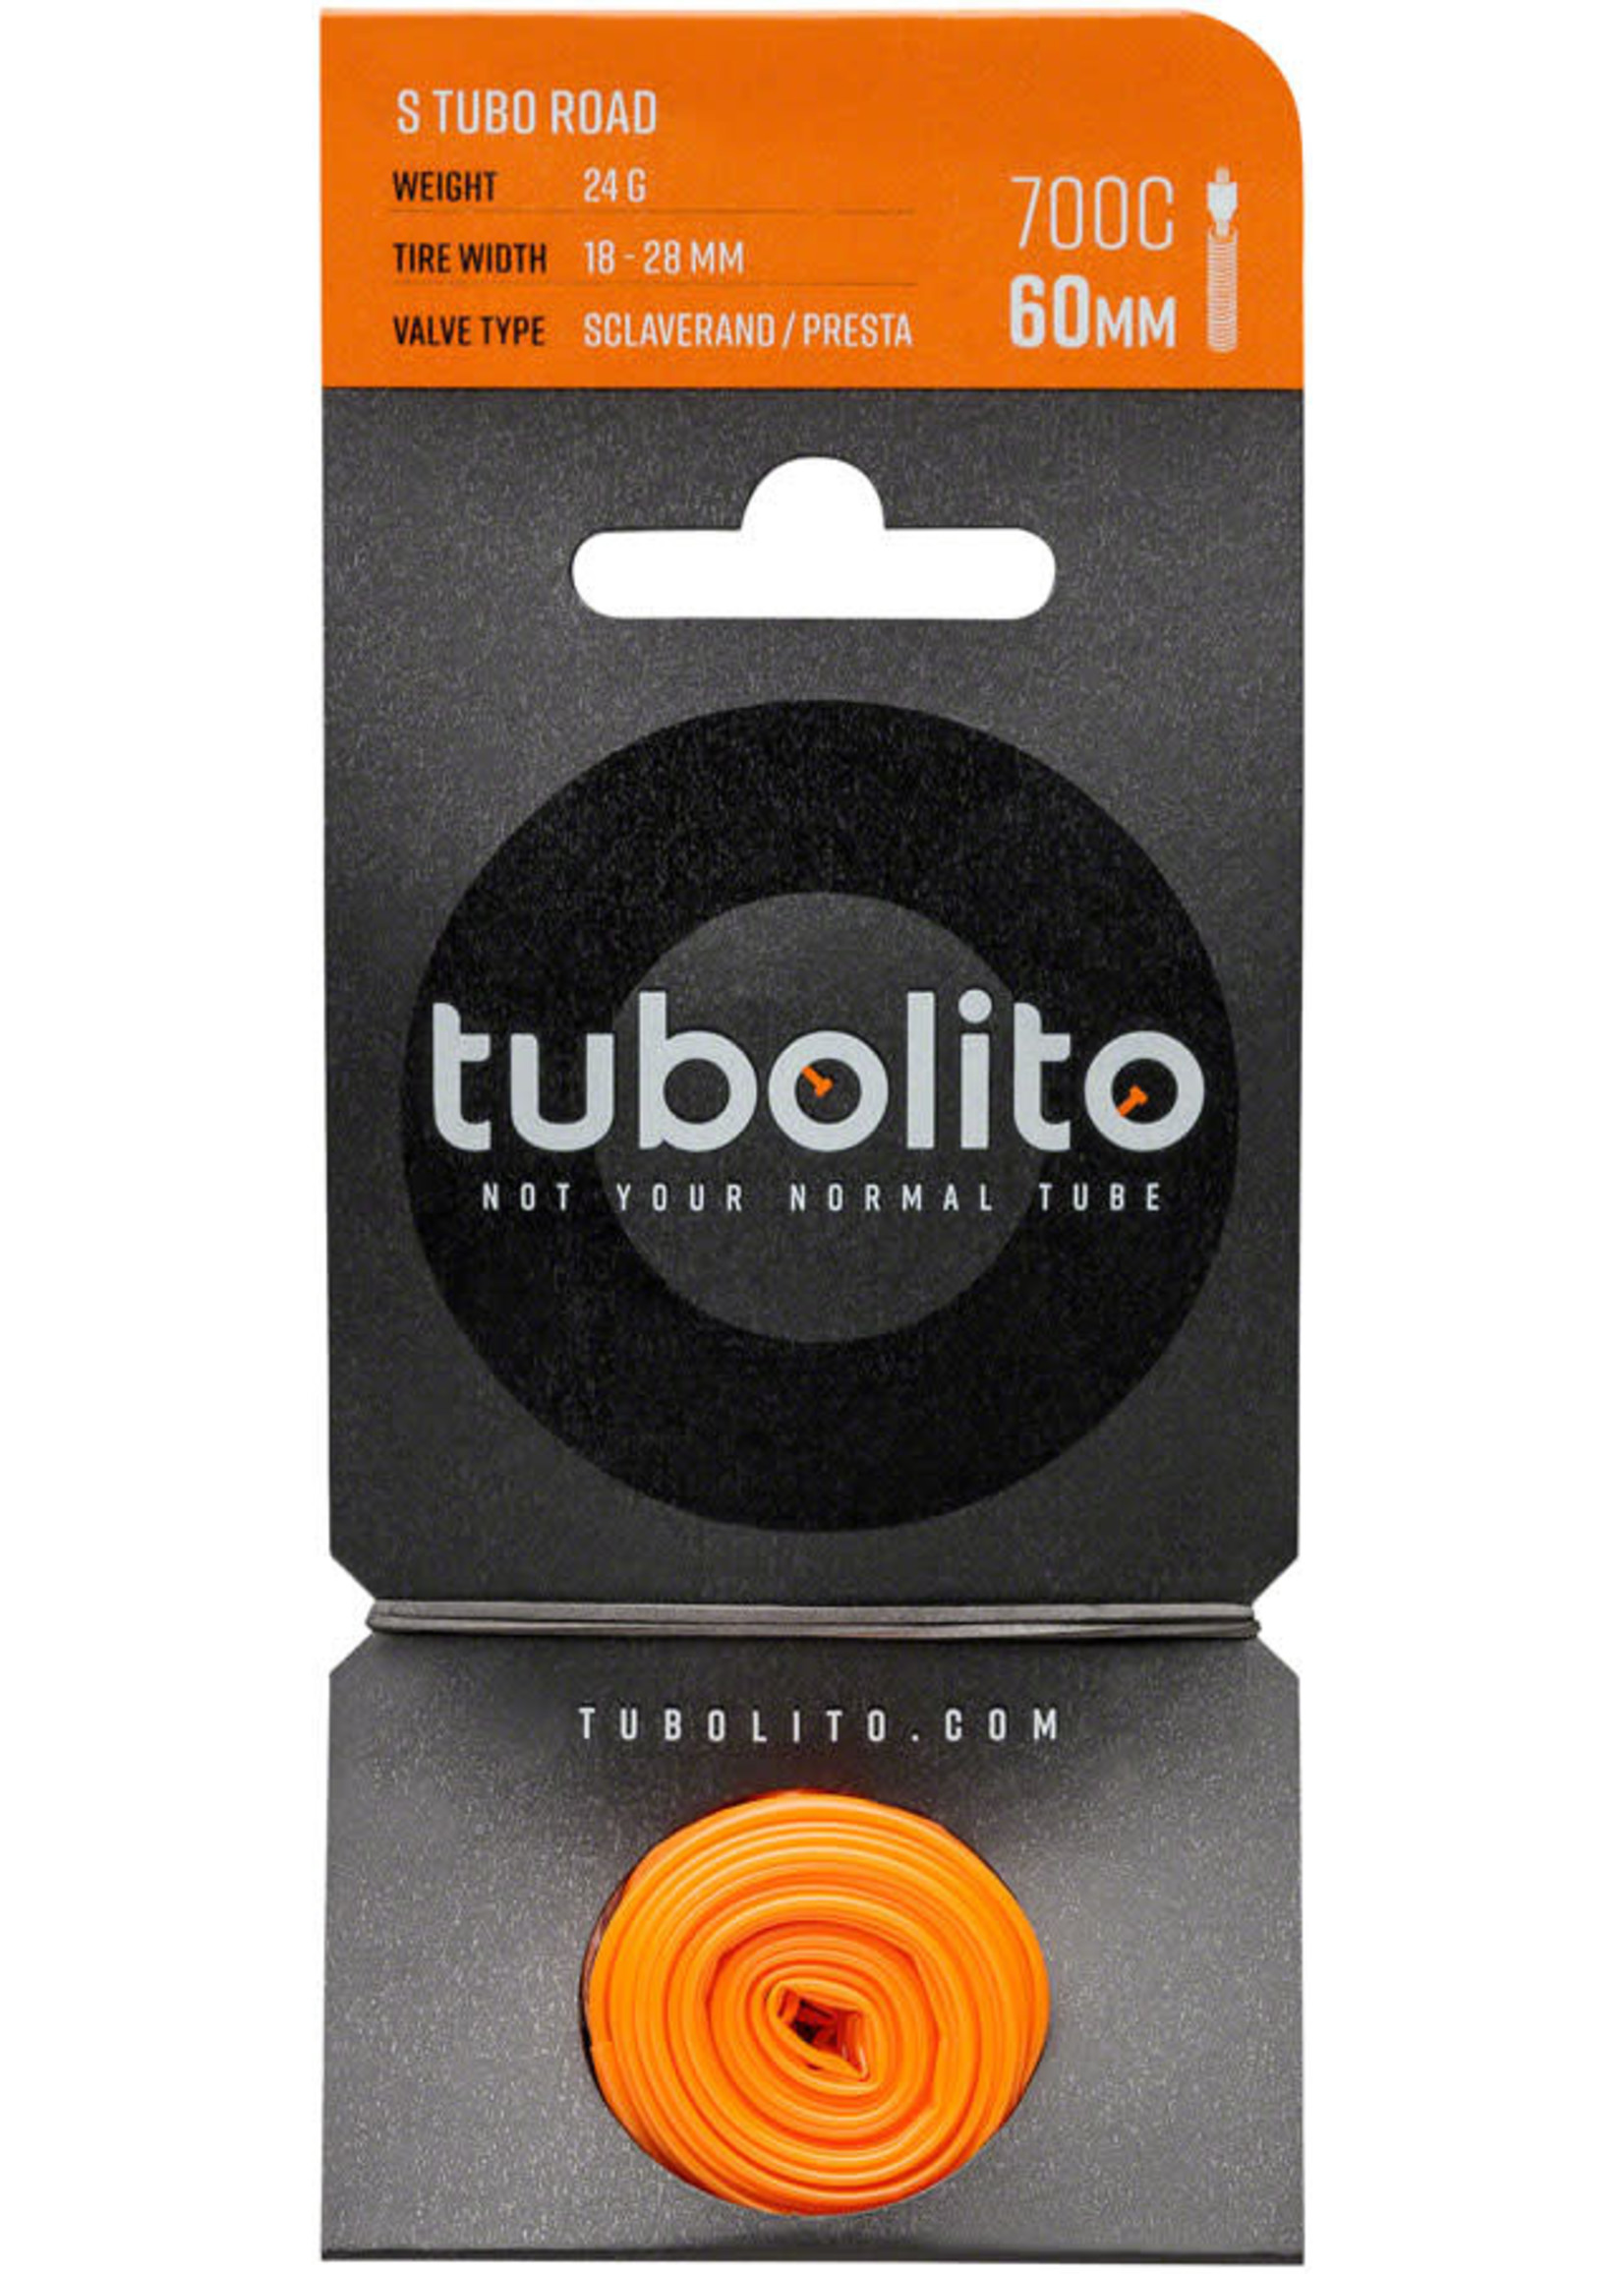 tubolito Tubolito S-Tubo Road 700 x 18-28mm Tube - 60mm Presta Valve, Disc Brake Only